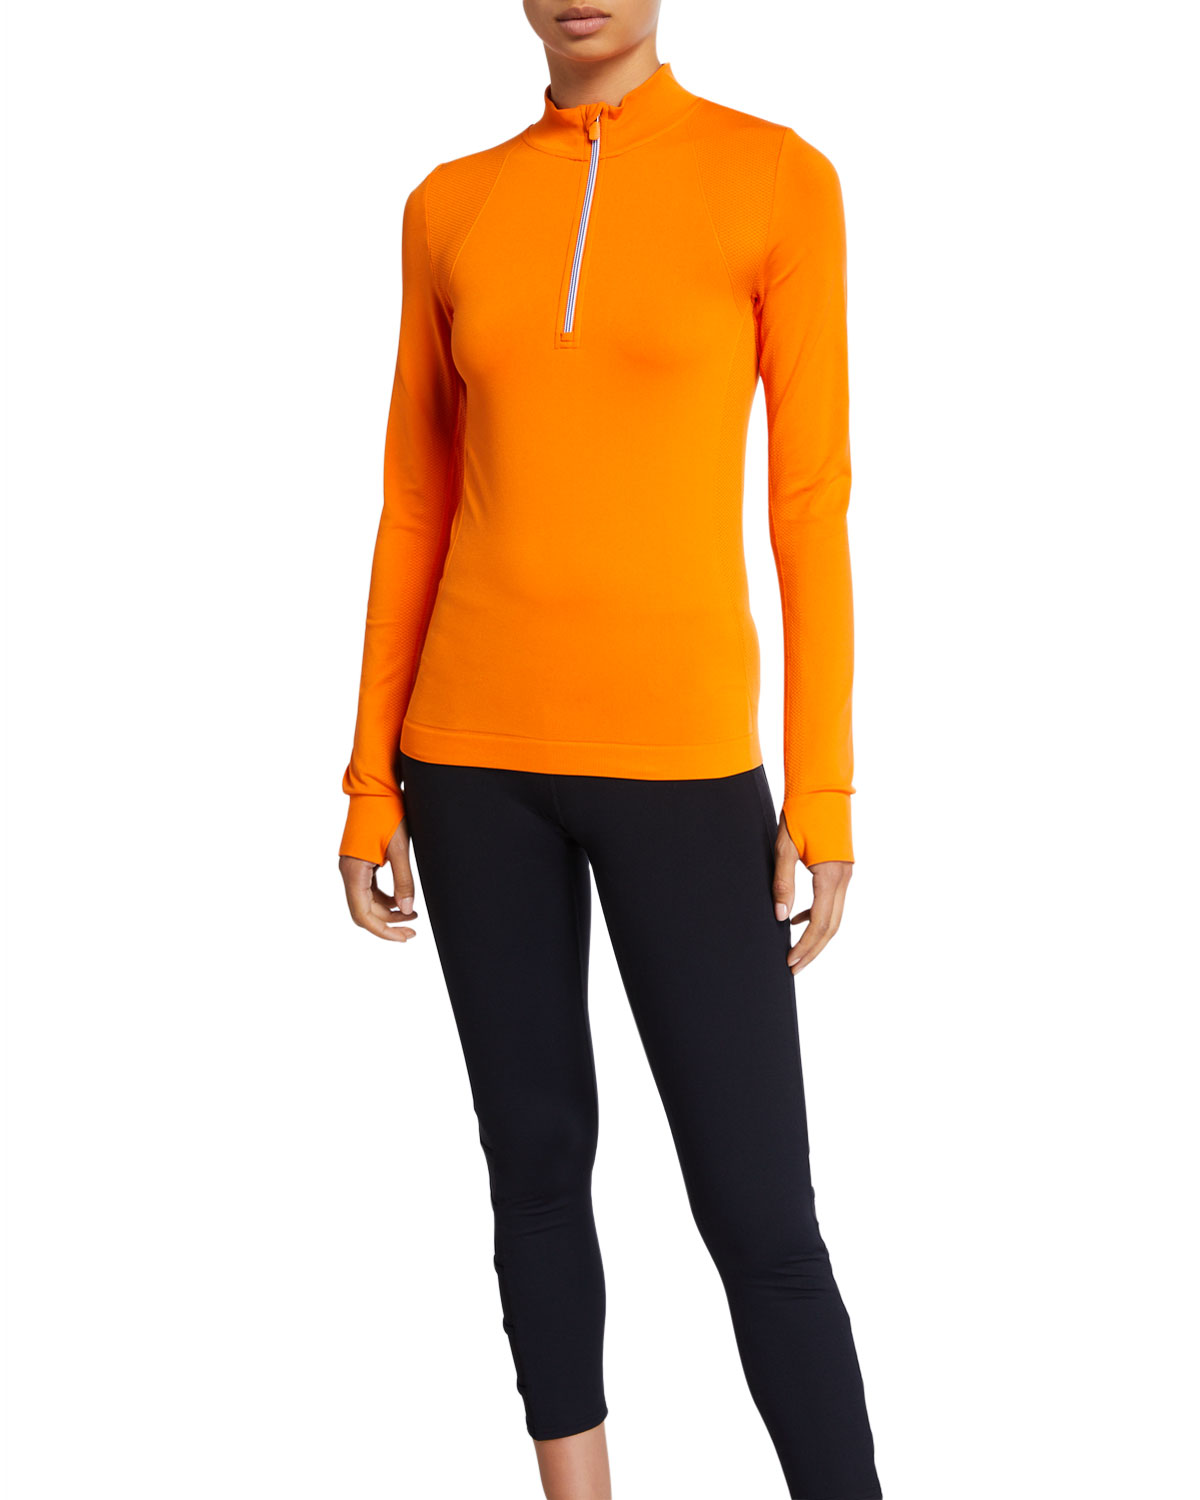 Tory Sport Tops SEAMLESS QUARTER-ZIP LONG-SLEEVE PULLOVER TOP